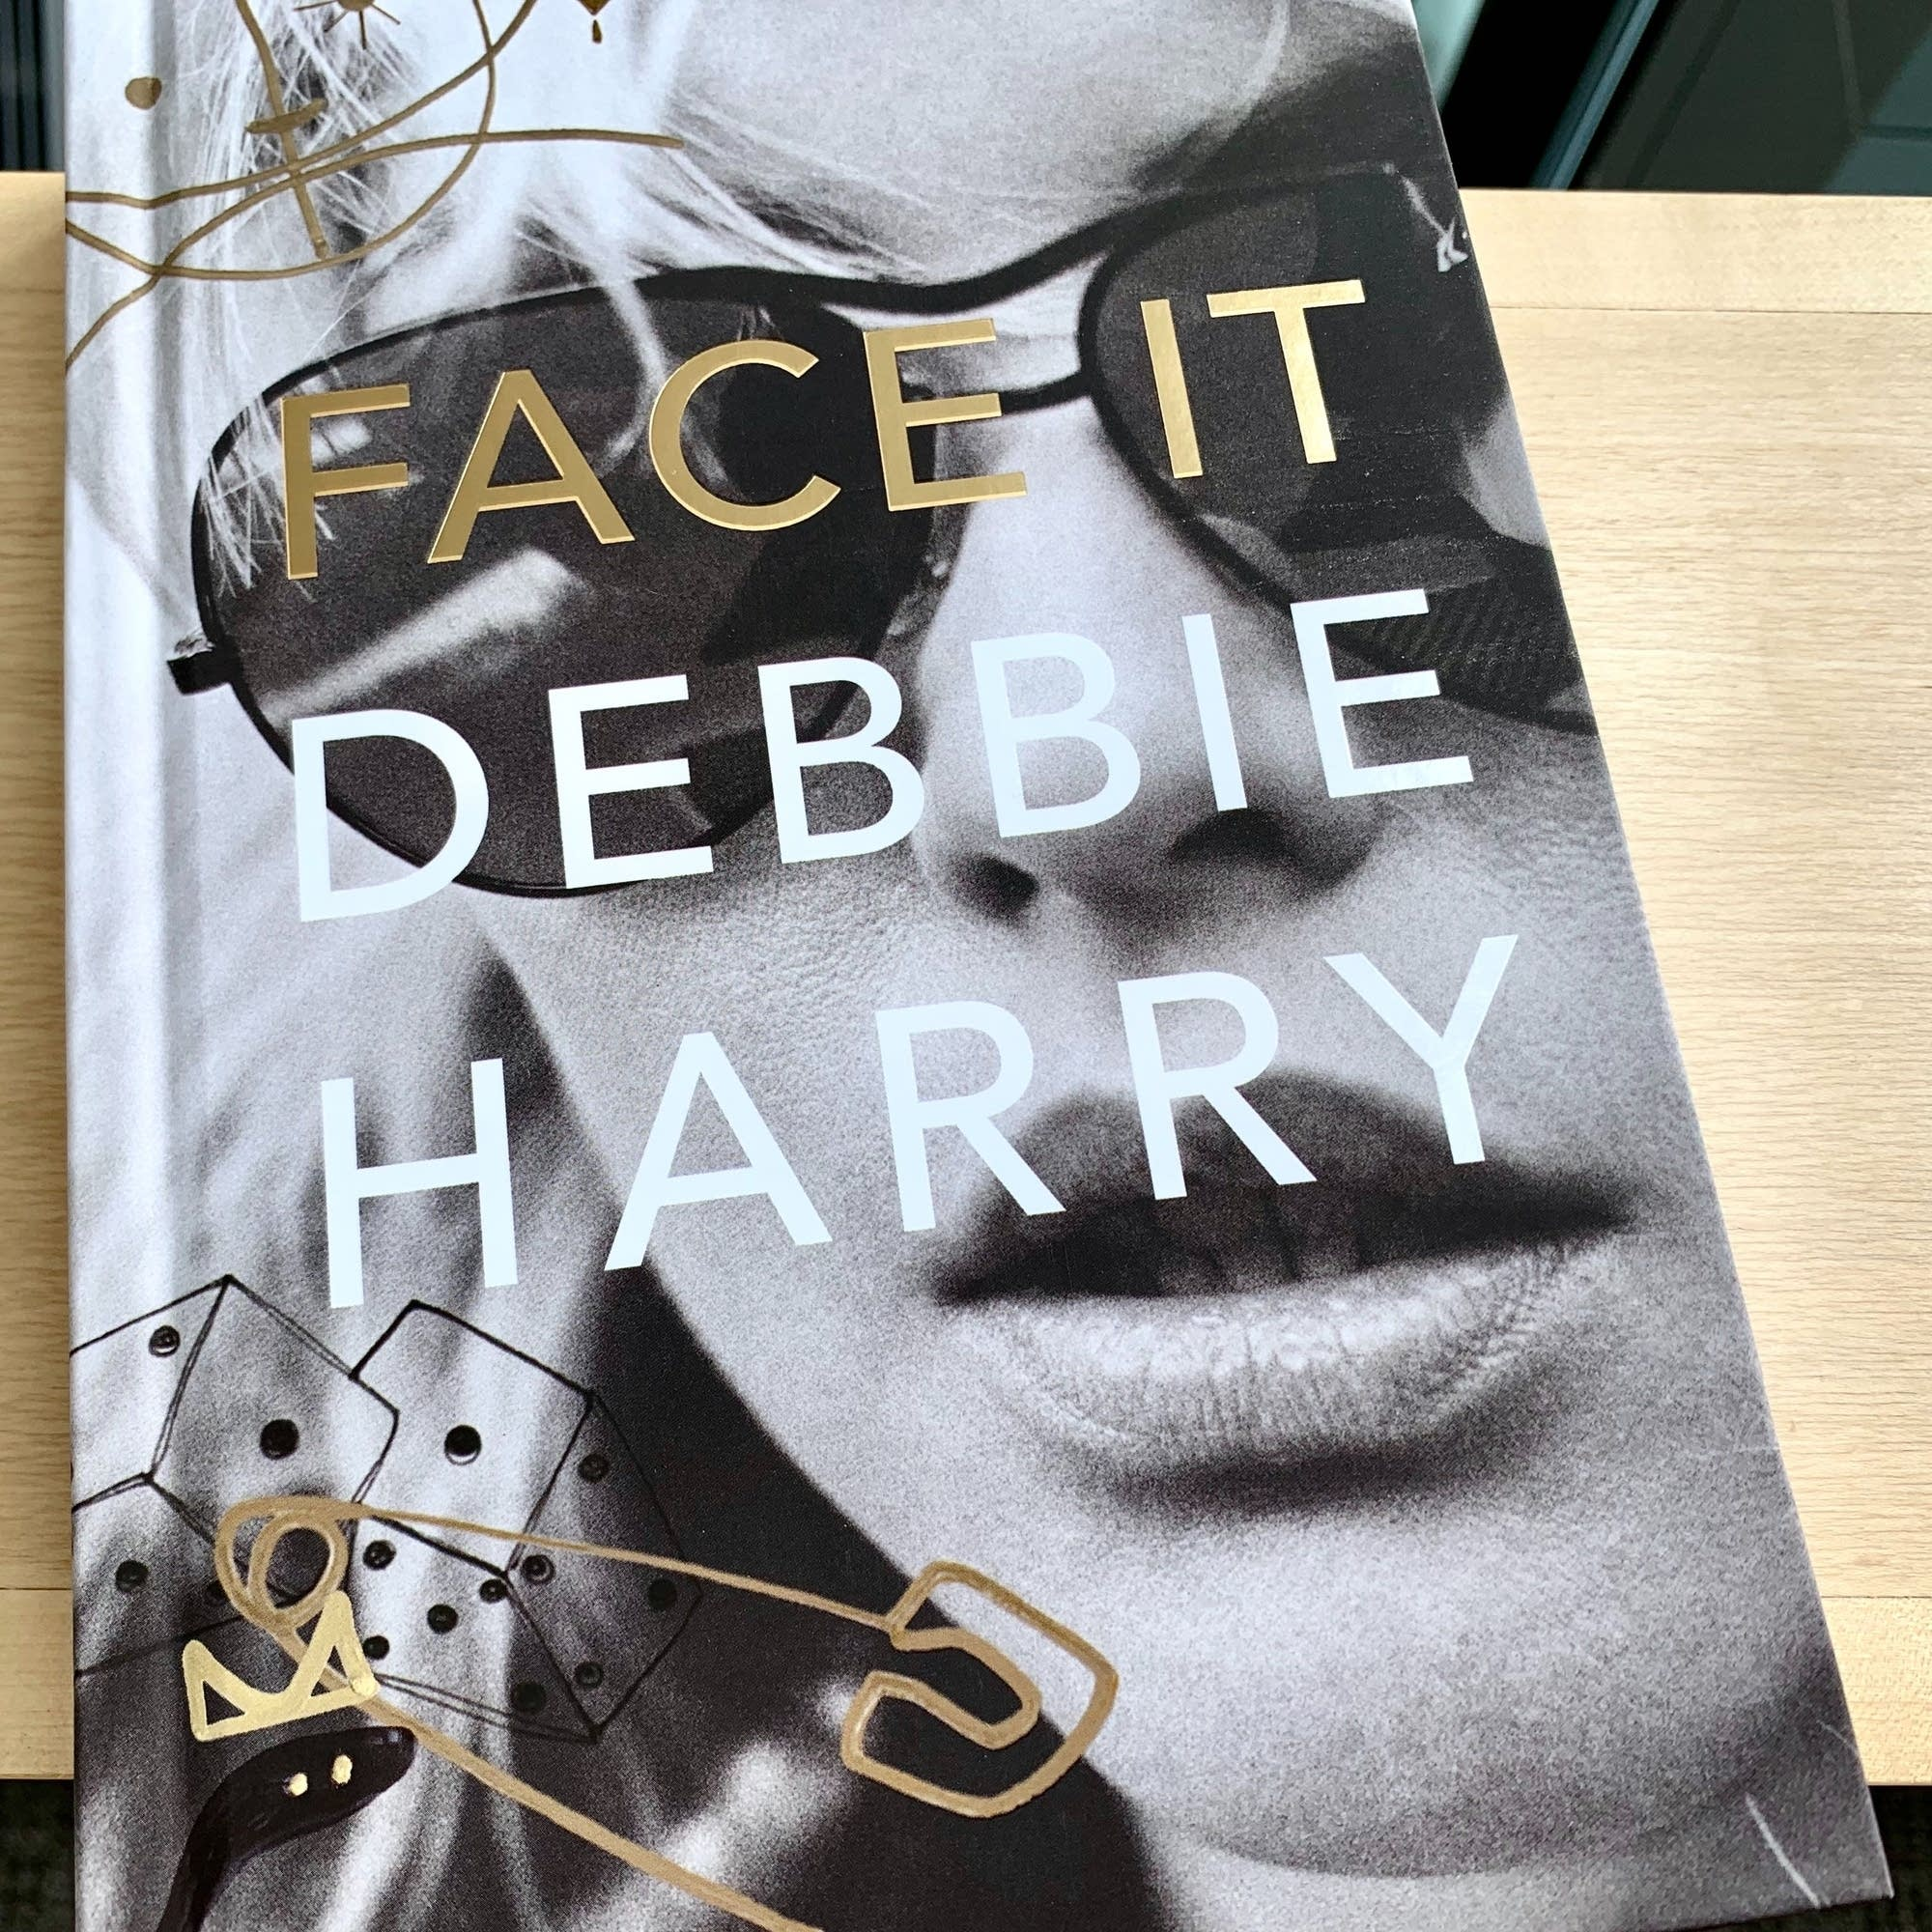 Debbie Harry's memoir 'Face It.'